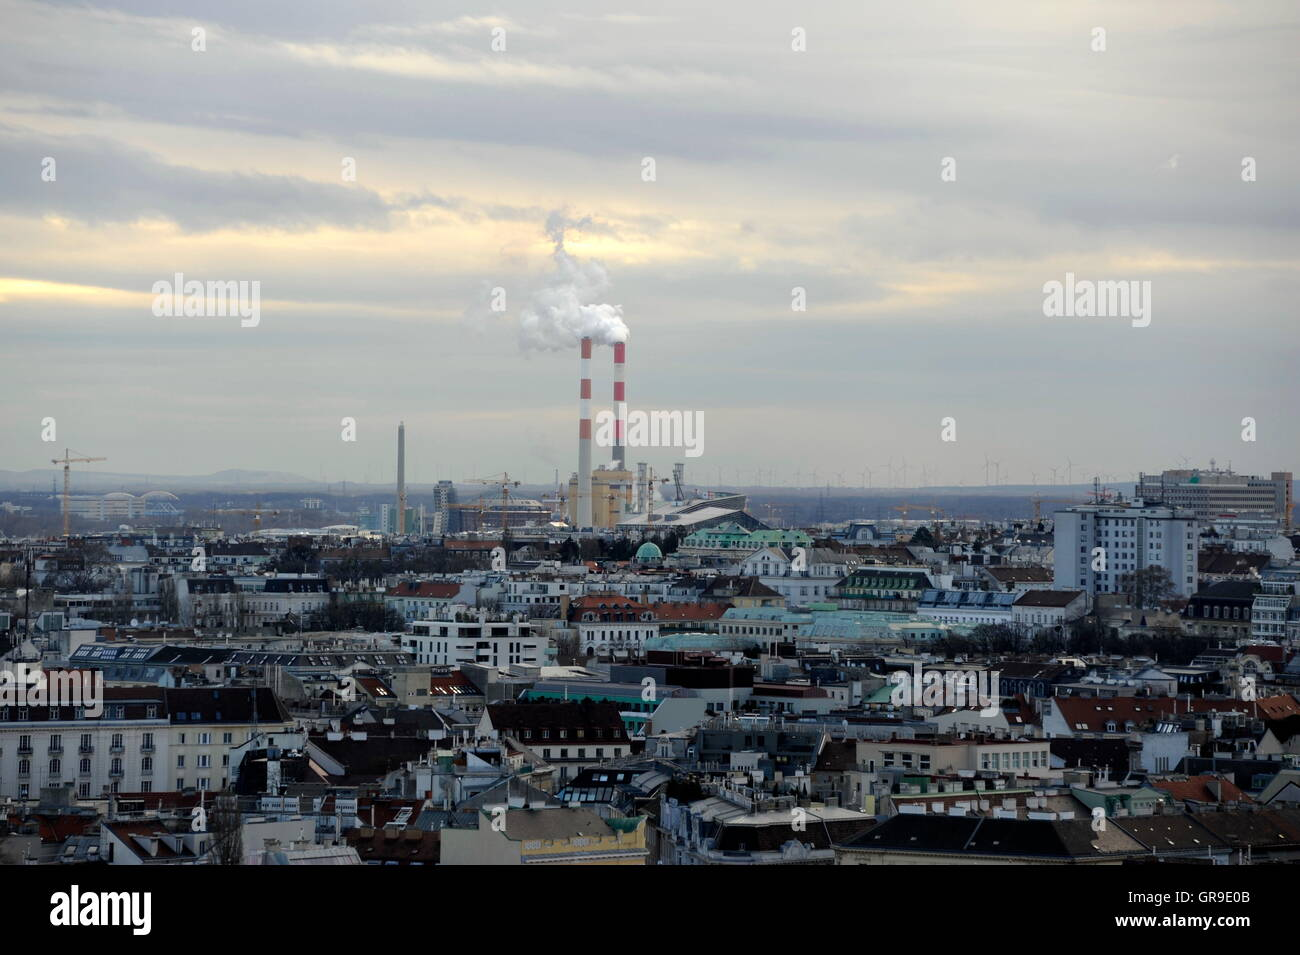 View Of Vienna With The Incinerator Simmering, Austria - Stock Image